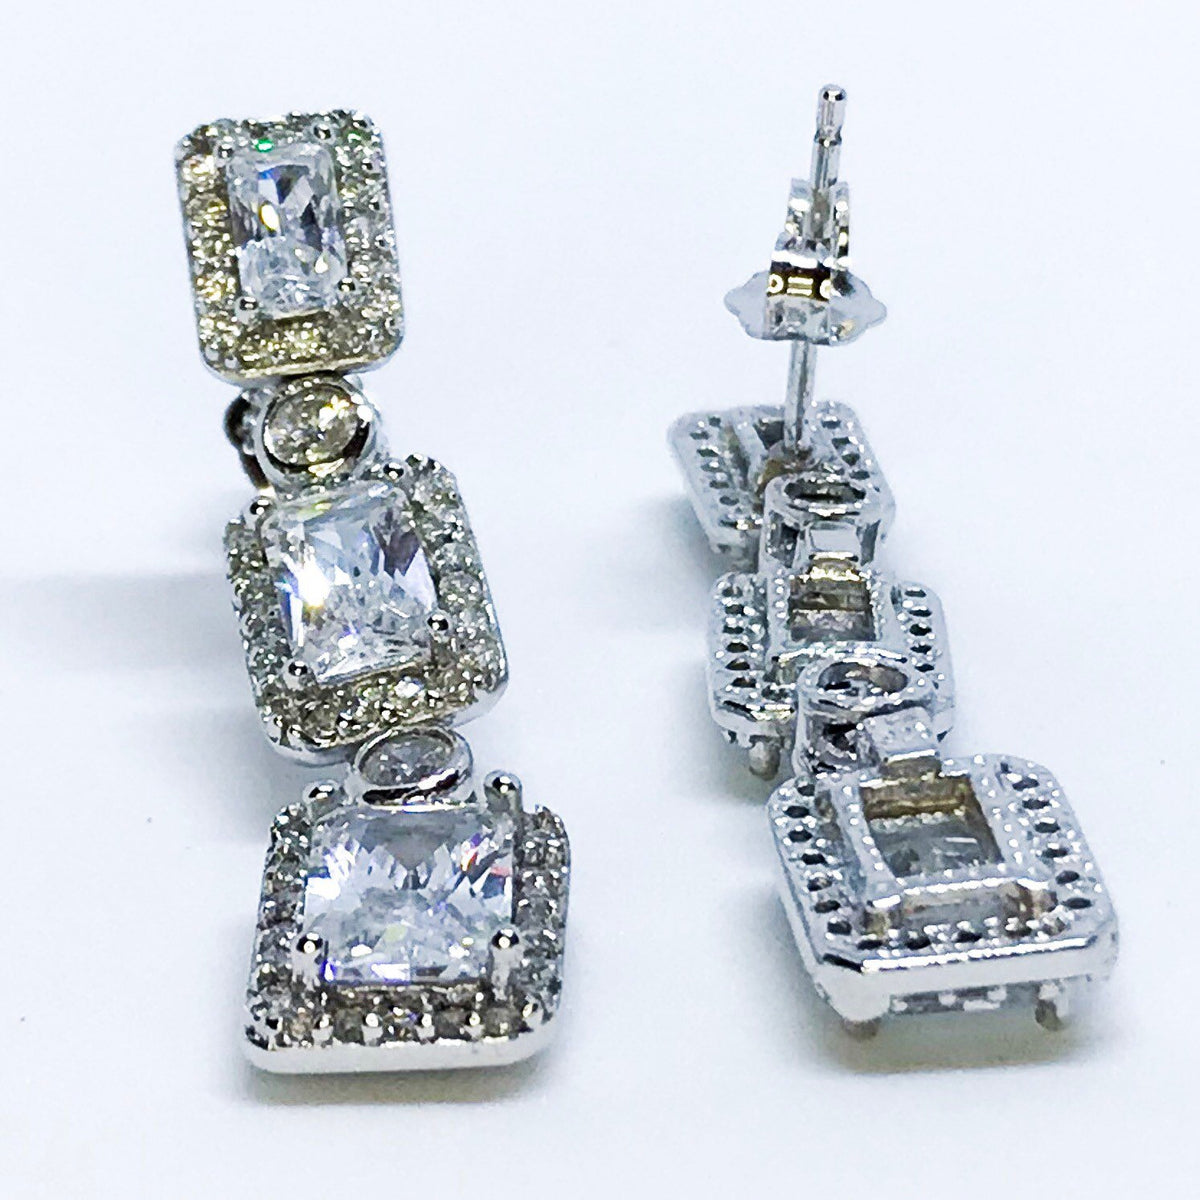 14k White Gold Layered on Sterling Silver Rectangles Dangling Earrings - 3 Royal Dazzy